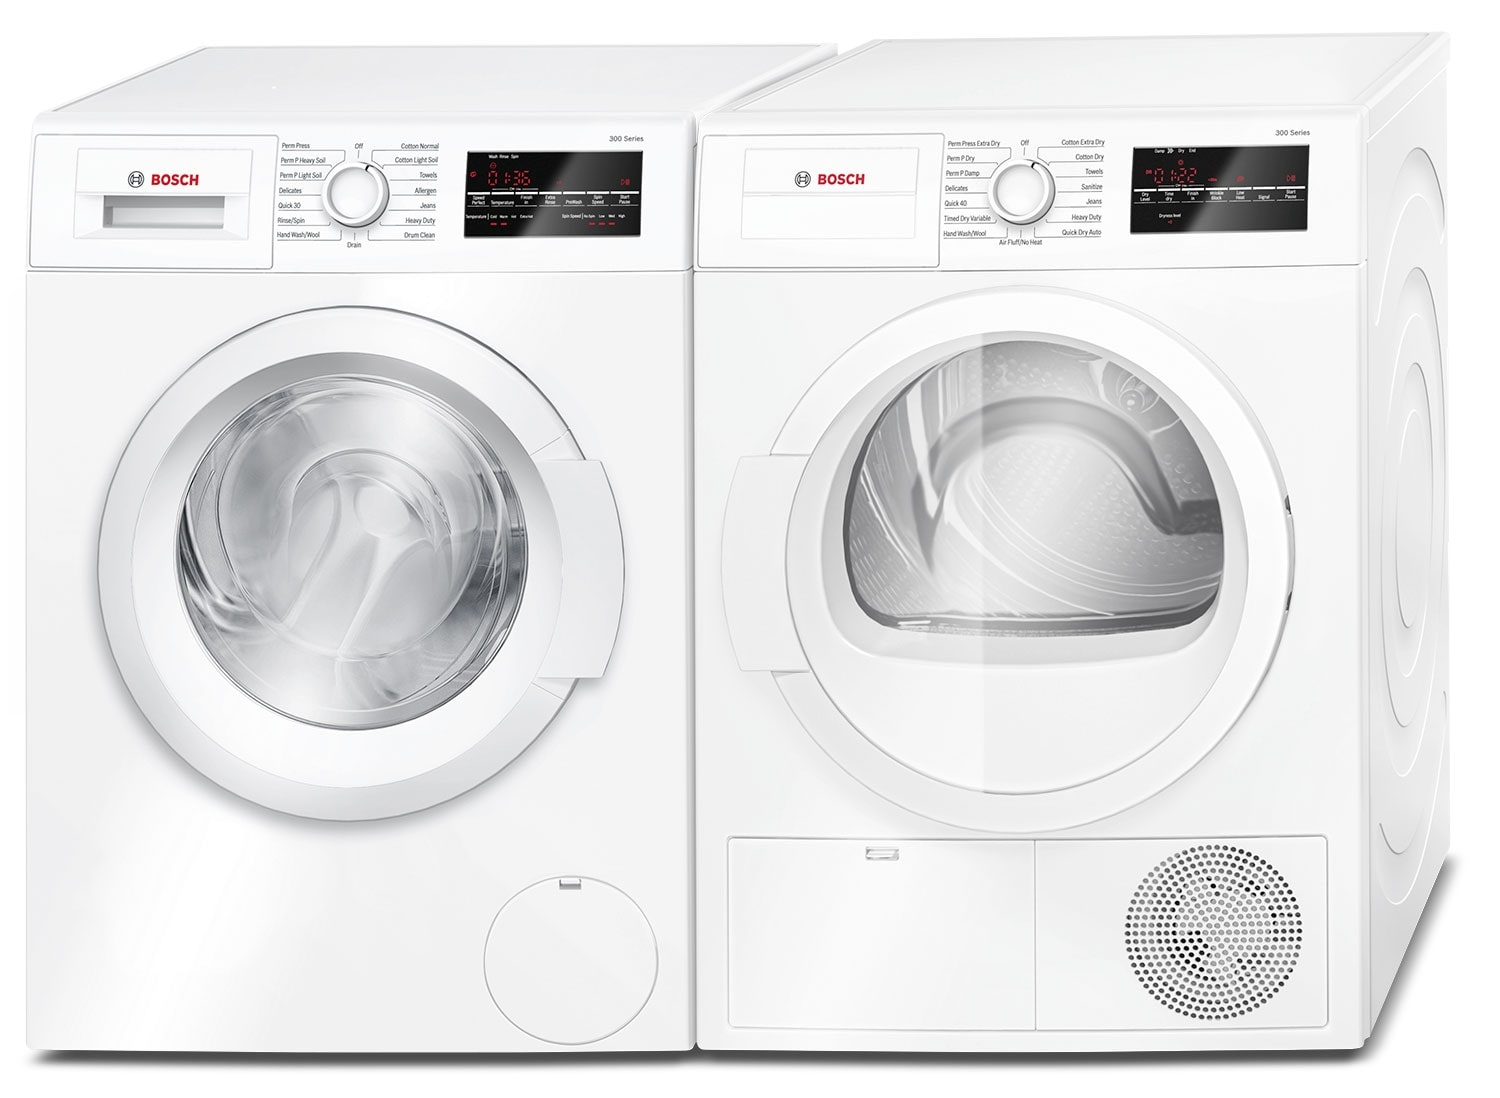 bosch 2 2 cu ft compact washer and 4 0 cu ft compact condensation dryer white the brick. Black Bedroom Furniture Sets. Home Design Ideas